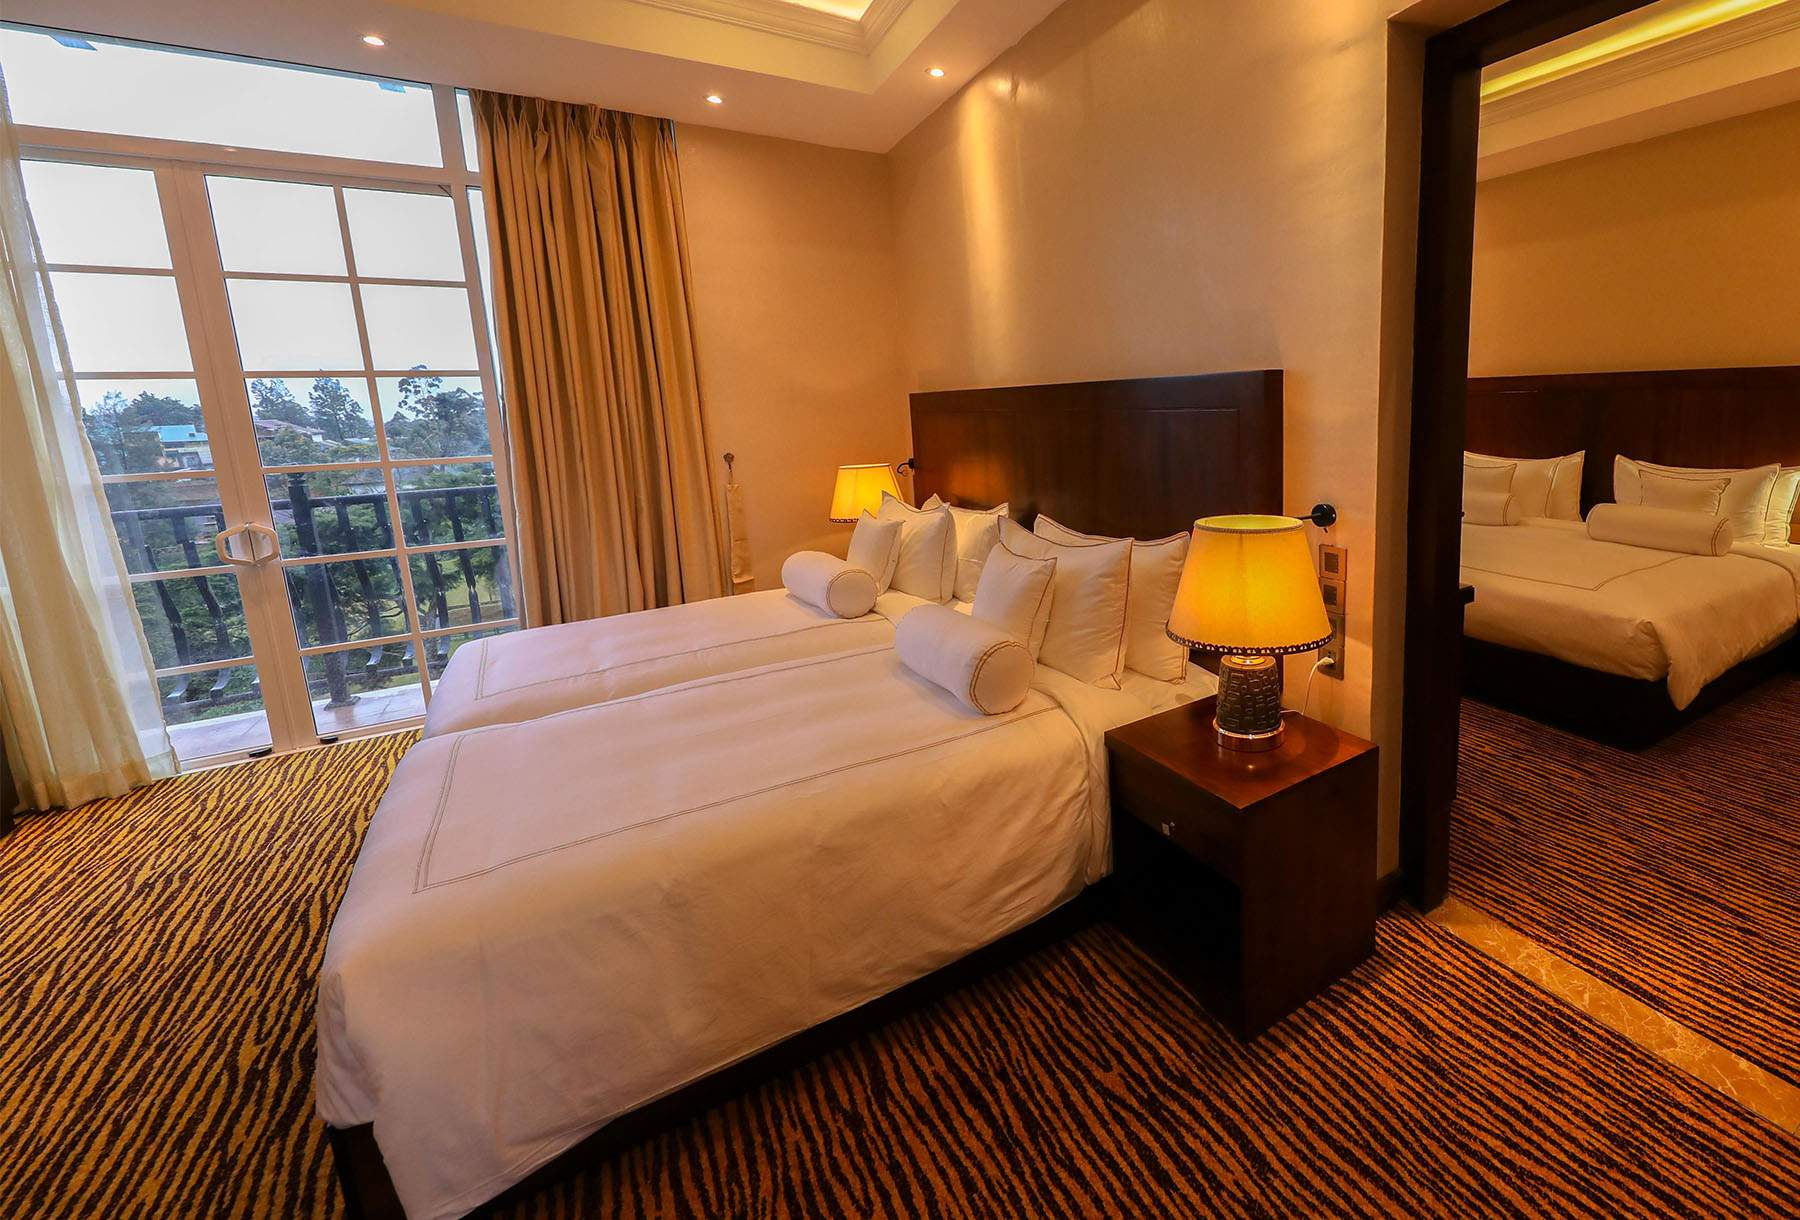 The Golden Ridge Hotel Nuwara Eliya room5.jpg